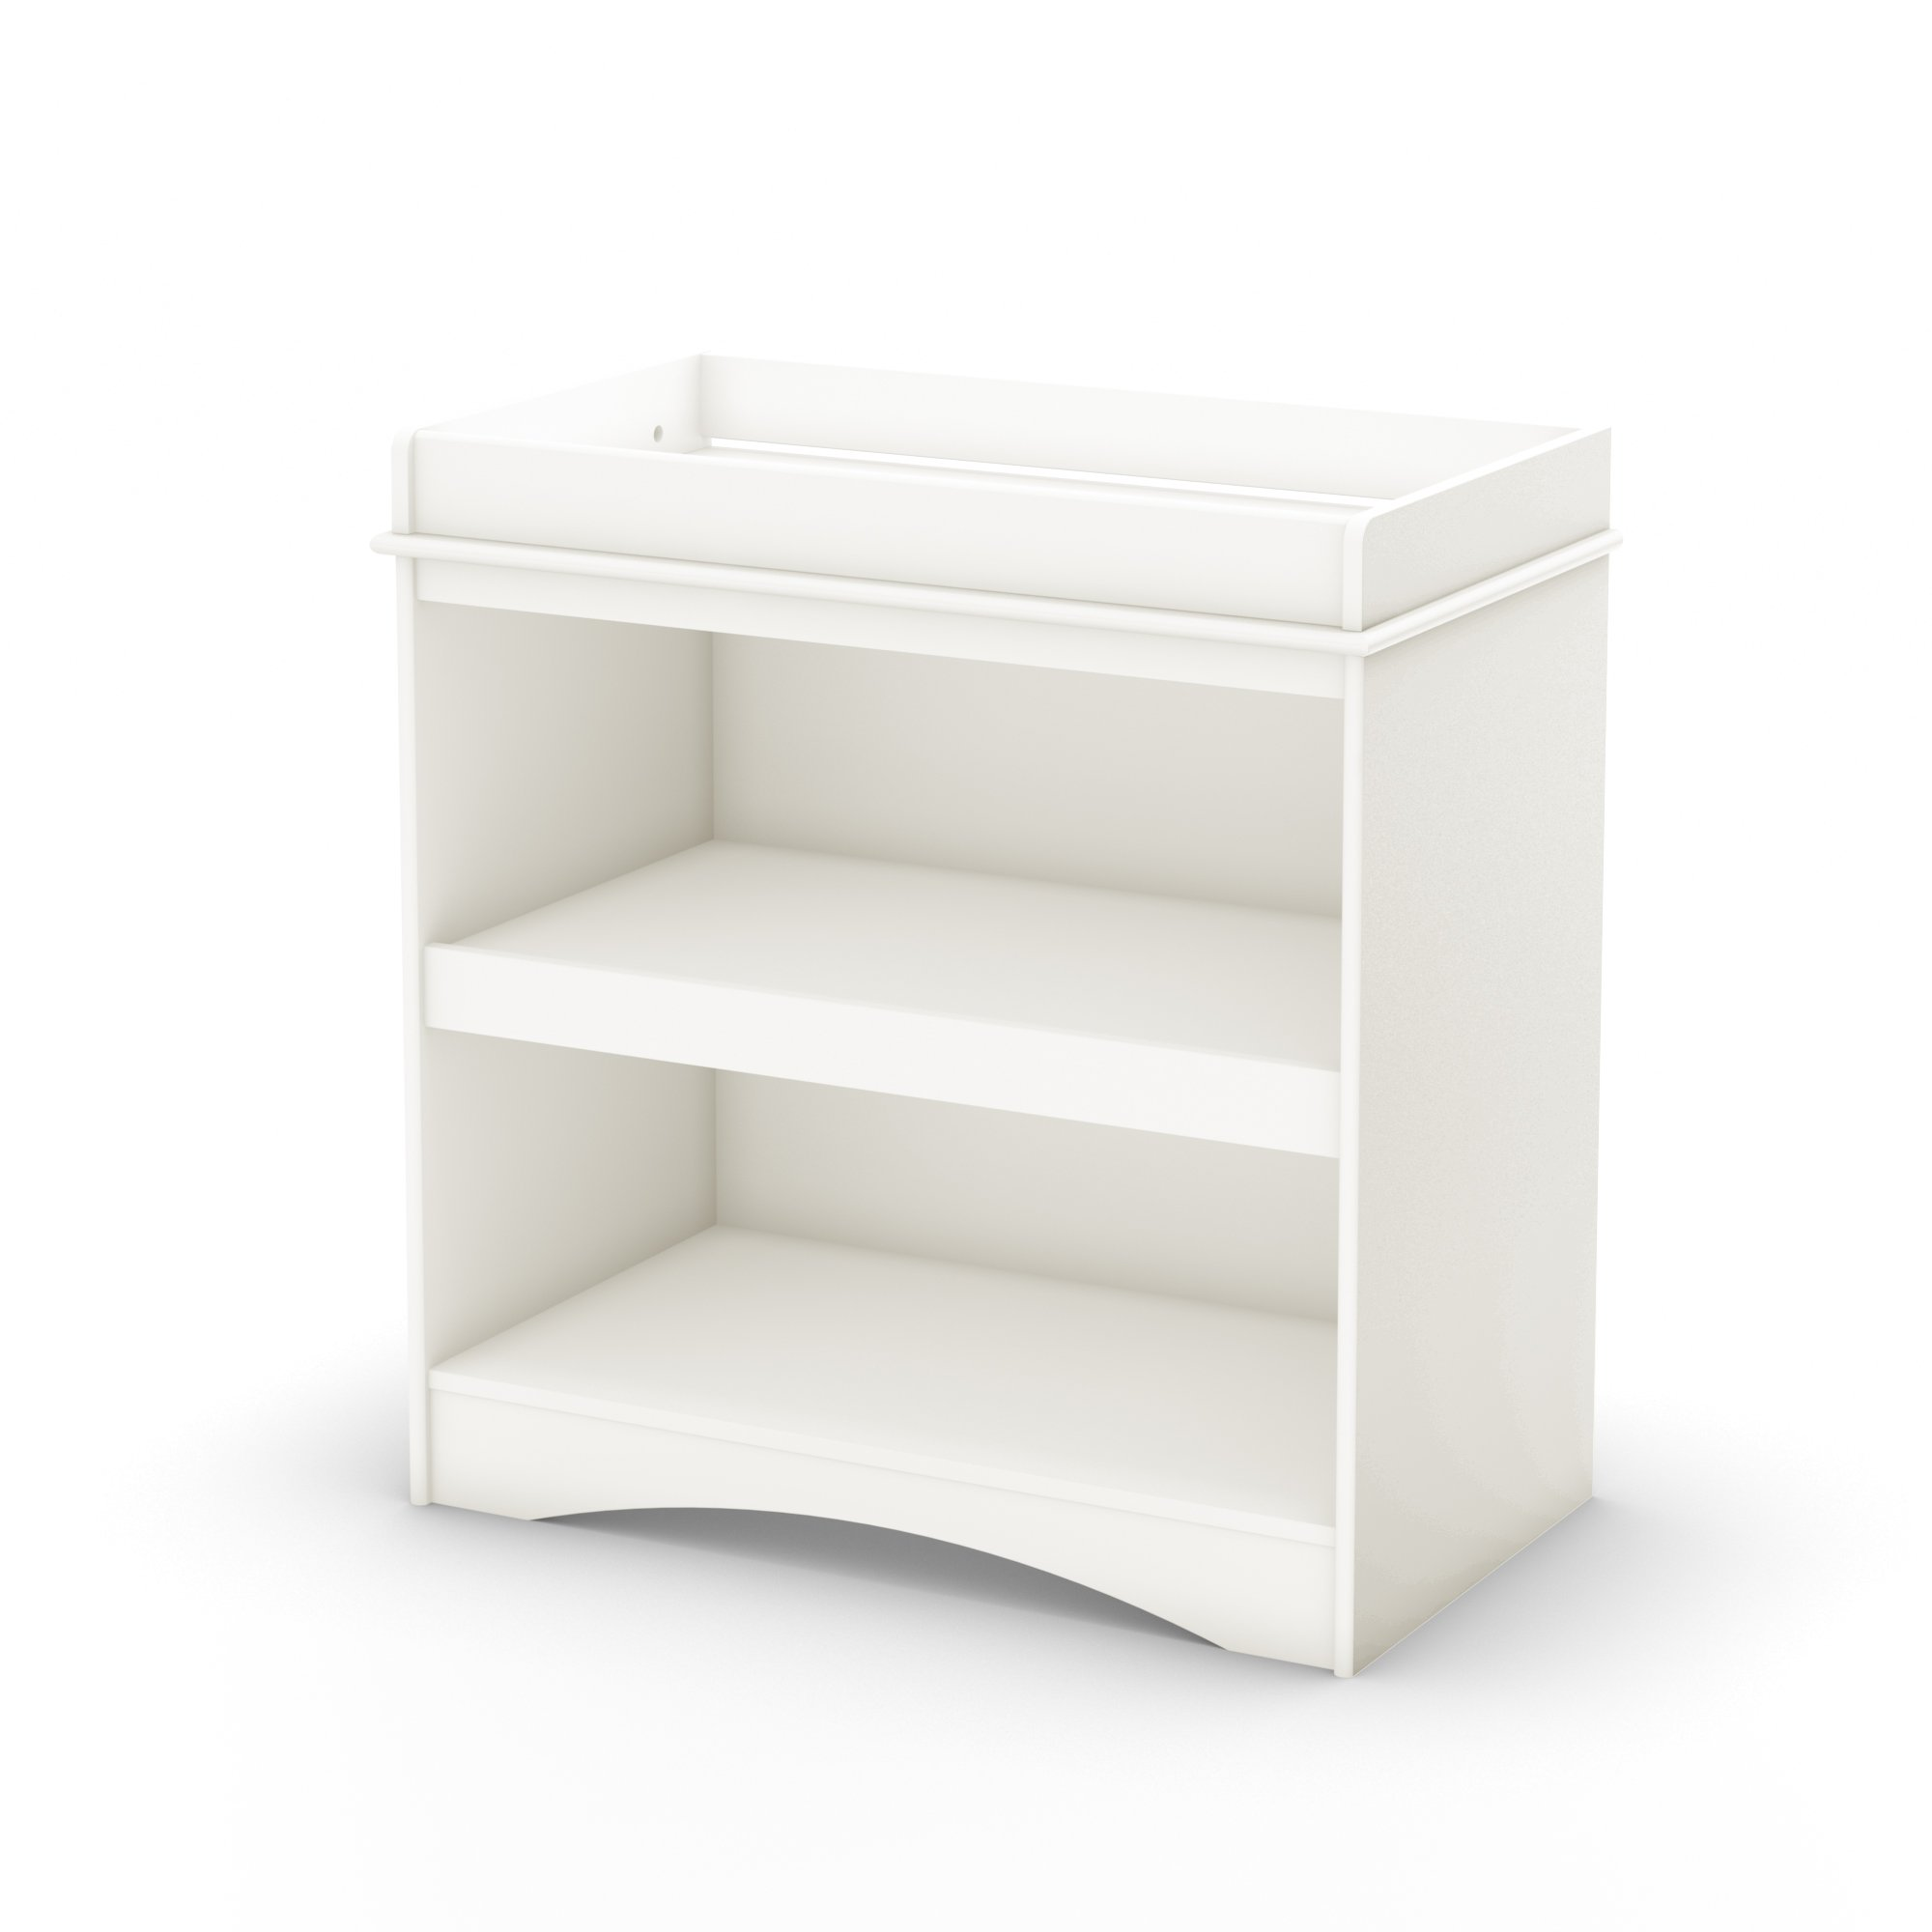 South Shore Cuddly Changing Table with 2 Drawers and open Storage Space, White by South Shore